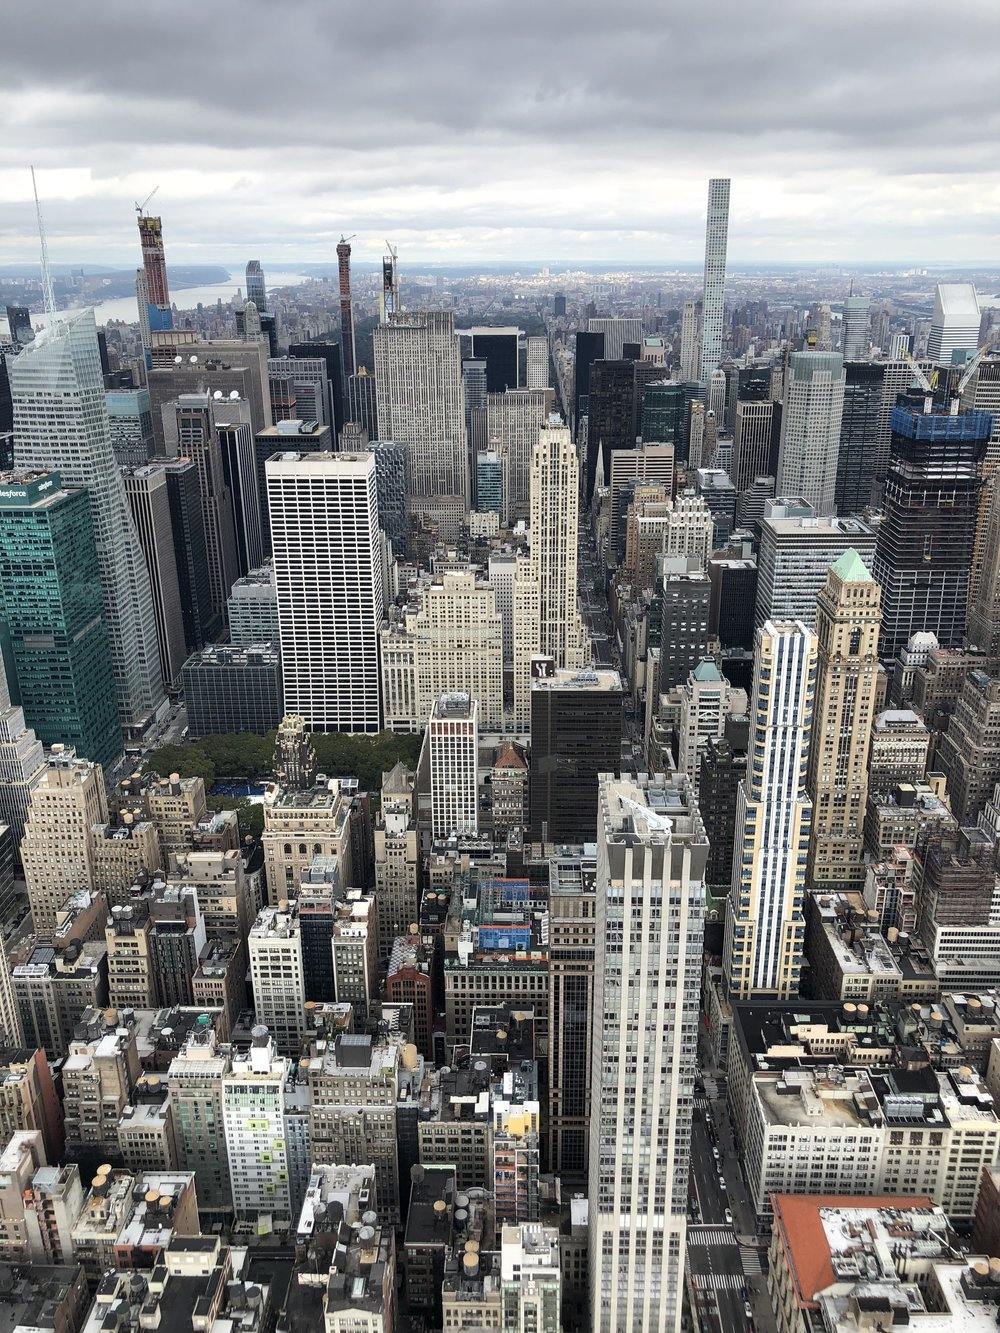 Photo by Jenni Johnson. View from the top of the Empire State Building, October 2018.